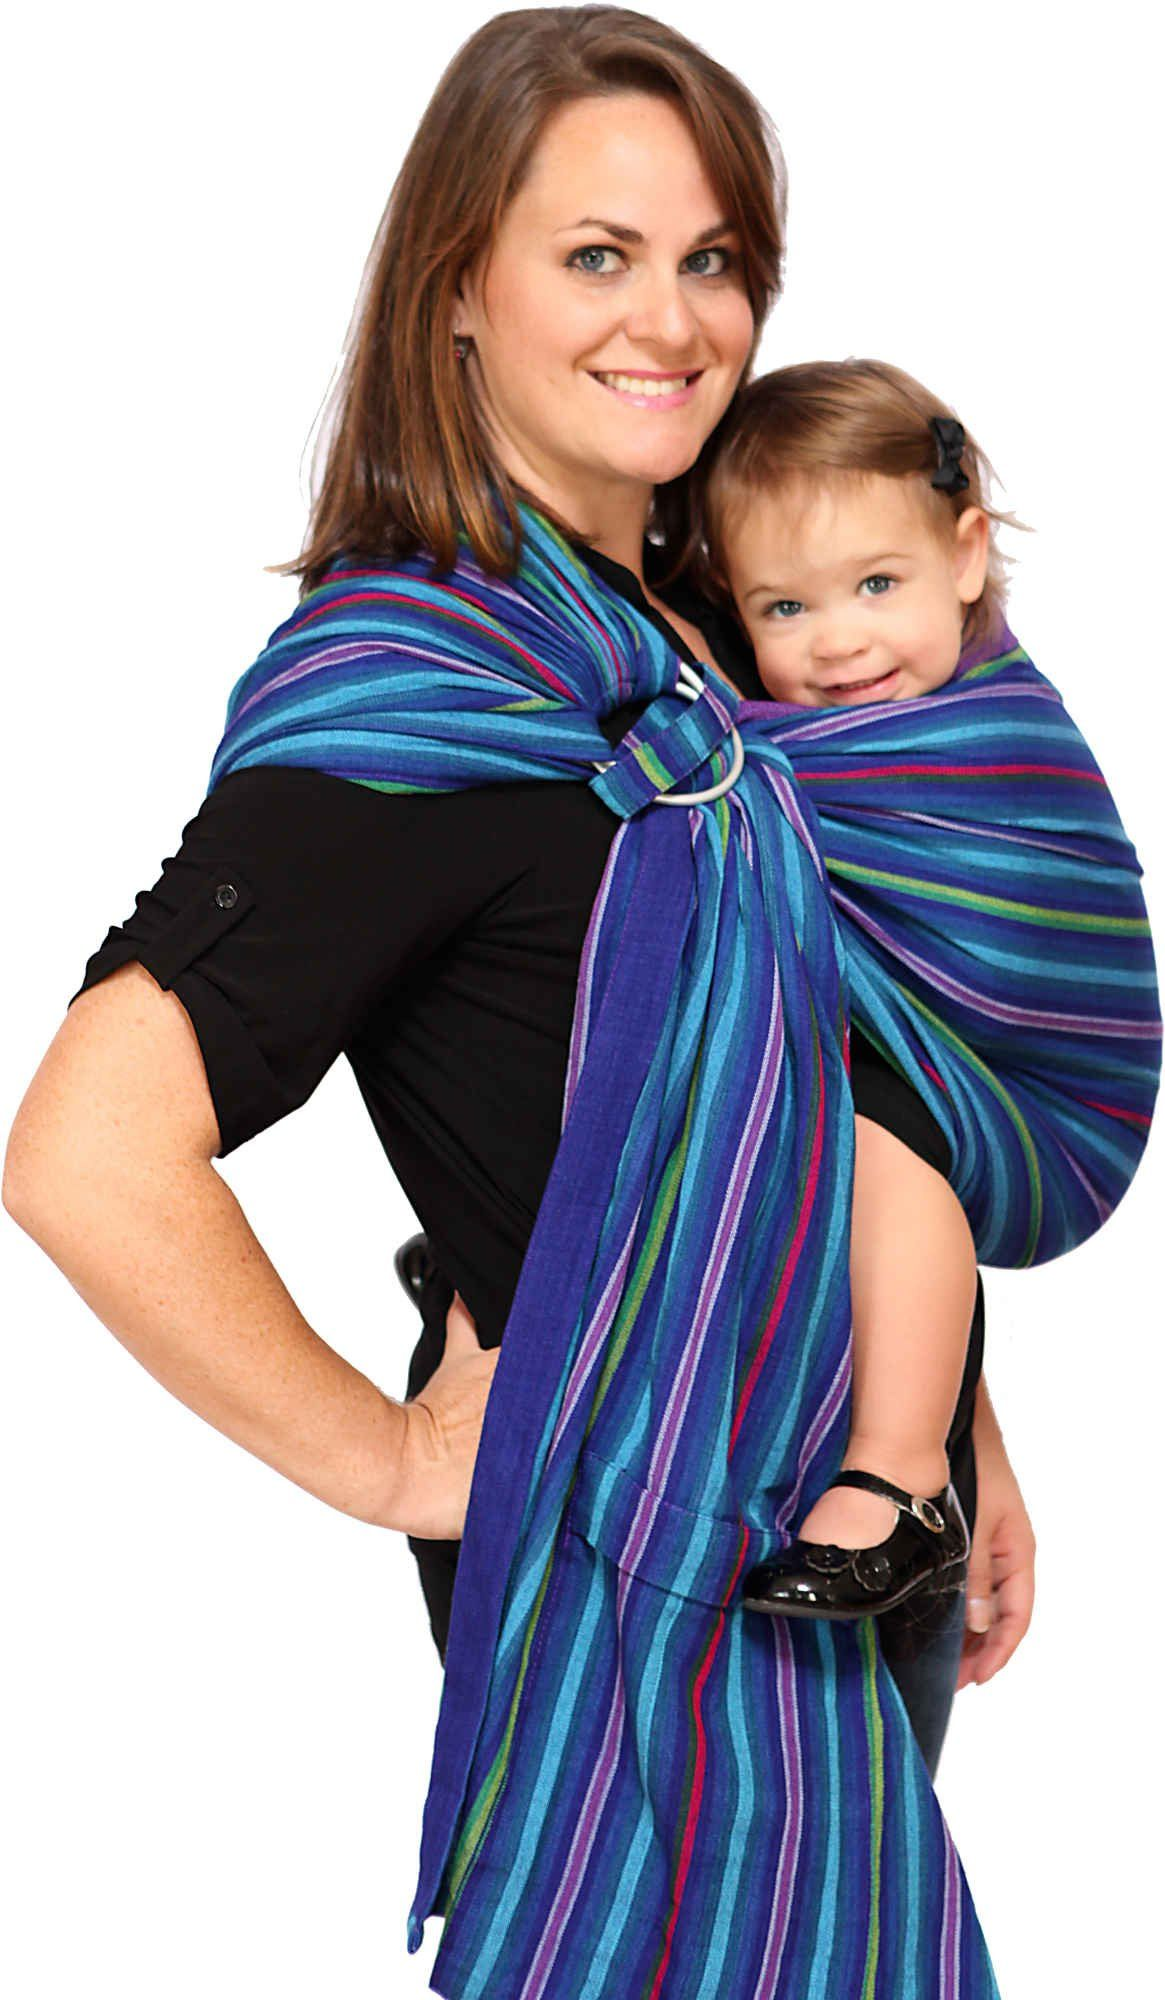 Maya Wrap Comfortfit Ring Sling Hashtag1 Ring Sling Baby Carrier Baby Sling Carrier Ergonomic Baby Carrier